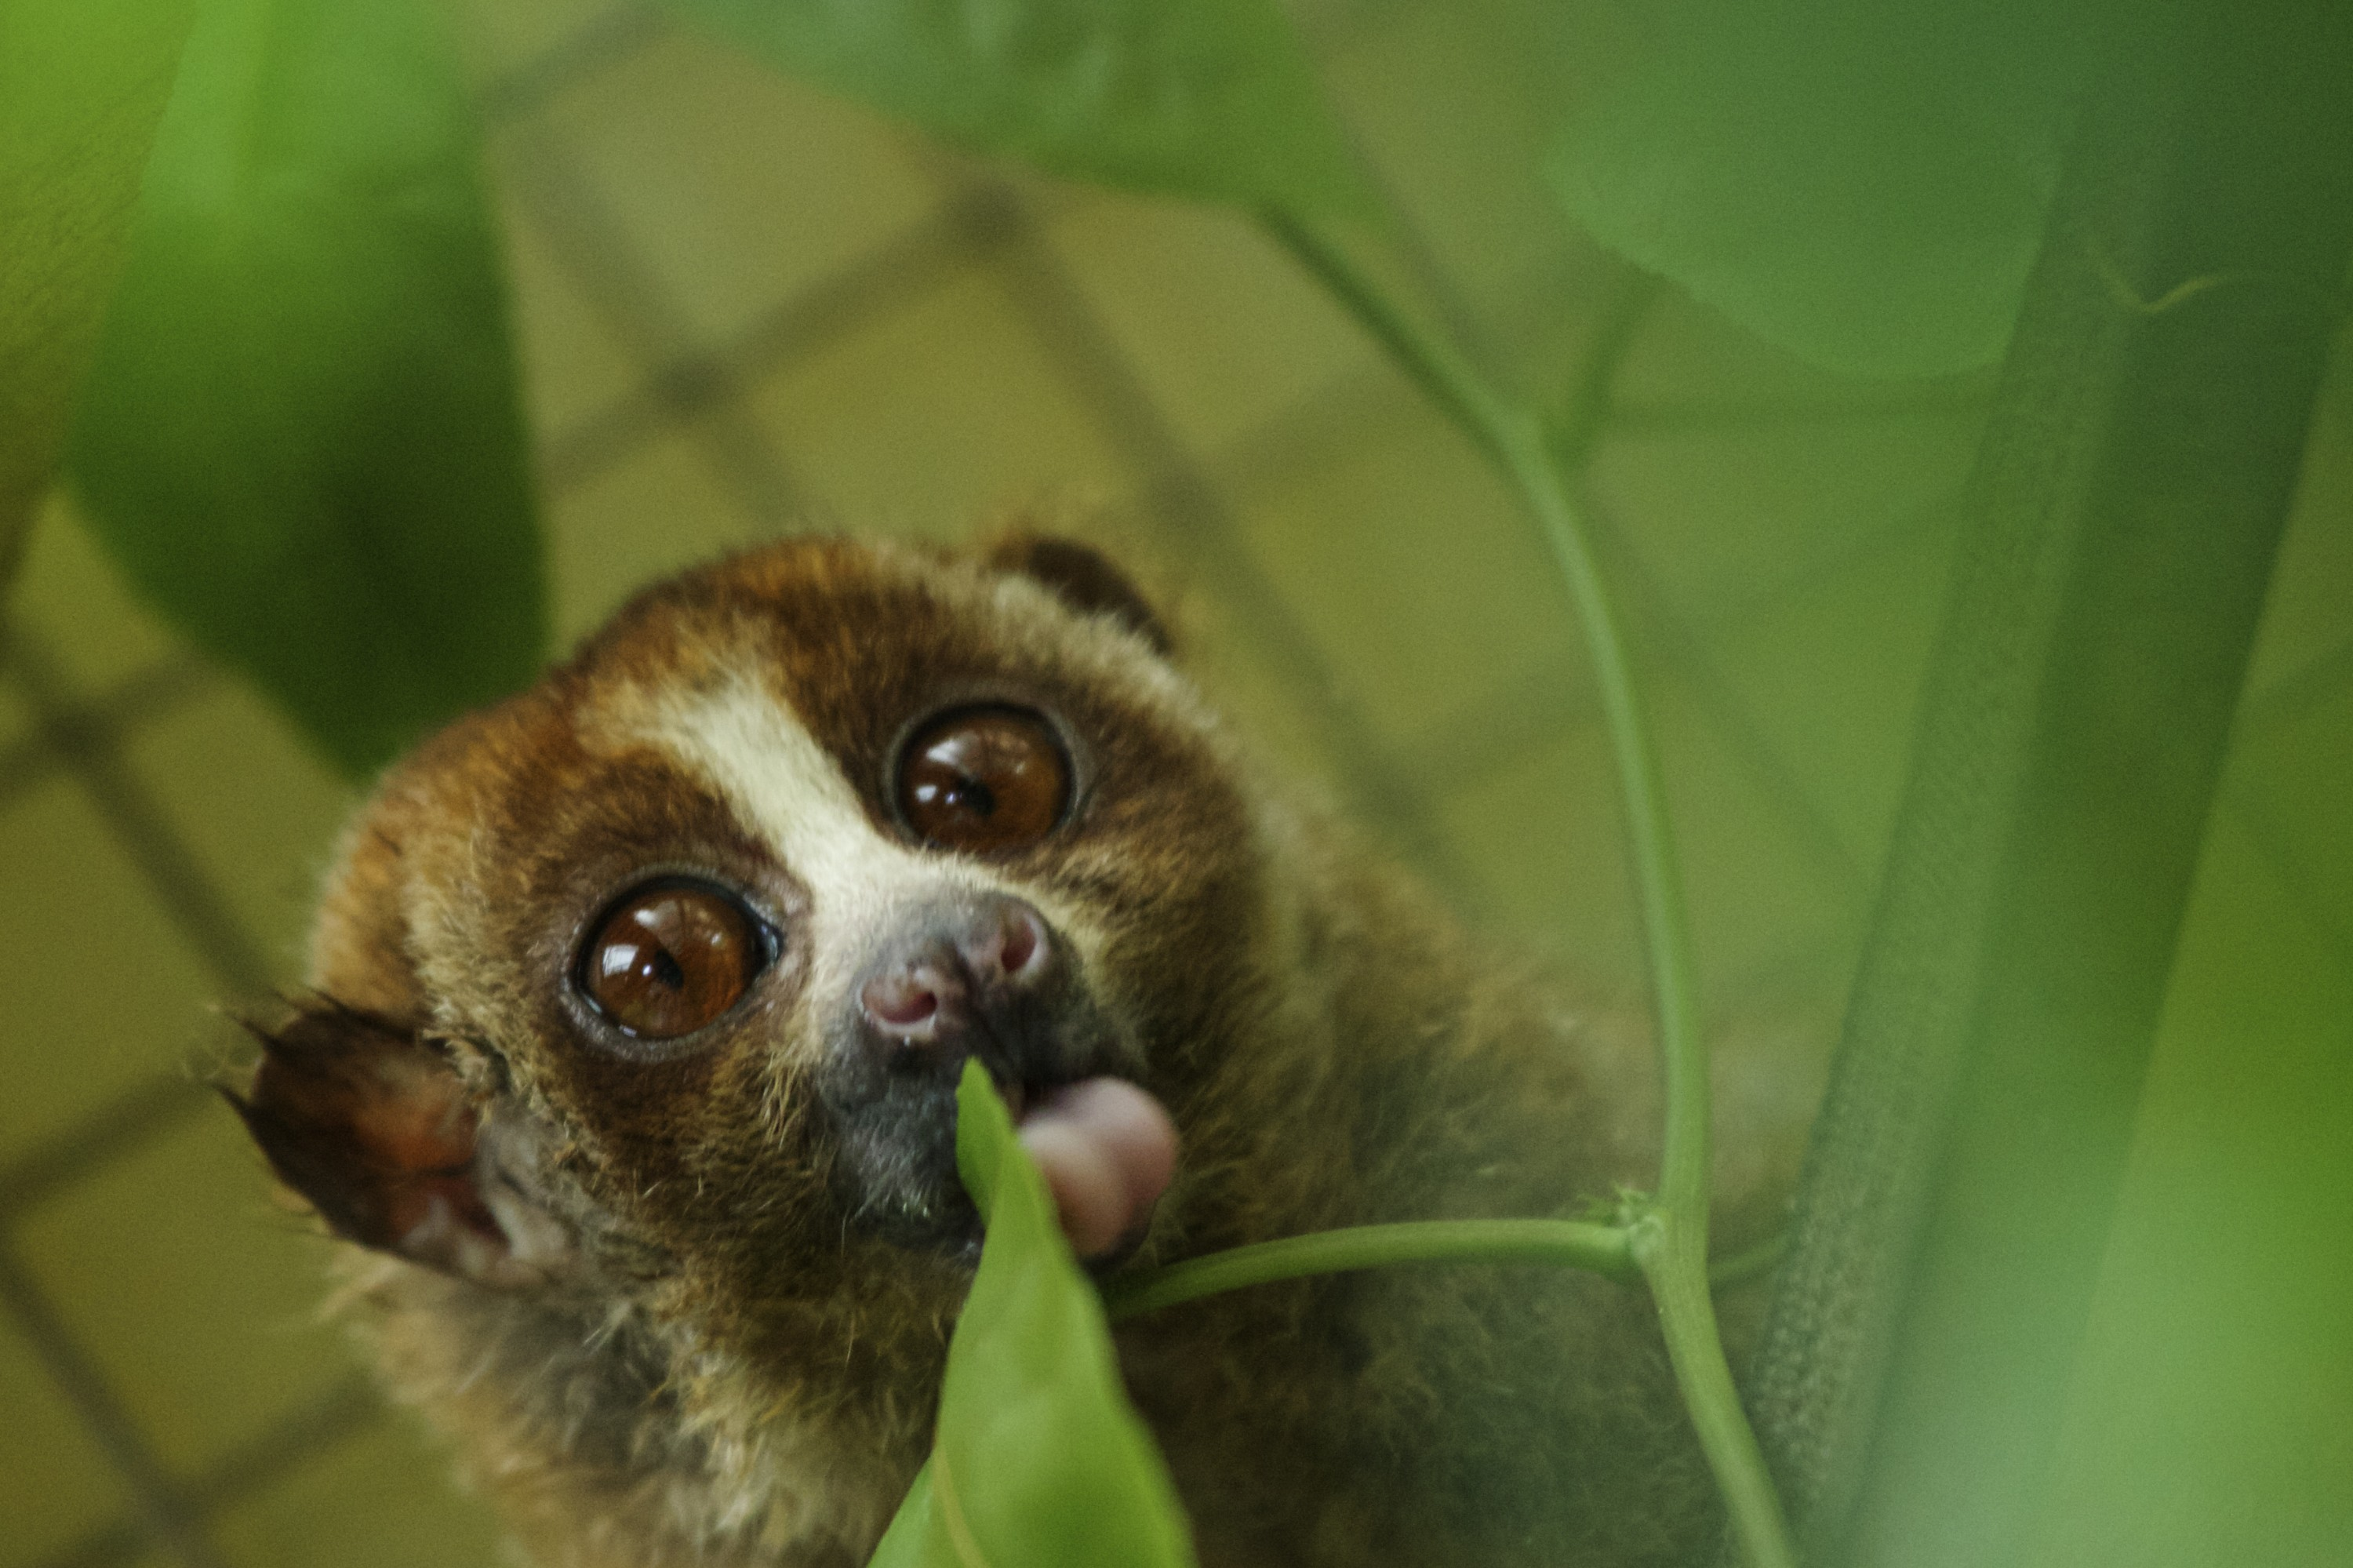 A slow loris in its cage at a sanctuary for the endangered animals, which have been confiscated from individuals or markets that illegally sell them as pets, on February 27, 2014 in Bogor, Indonesia.